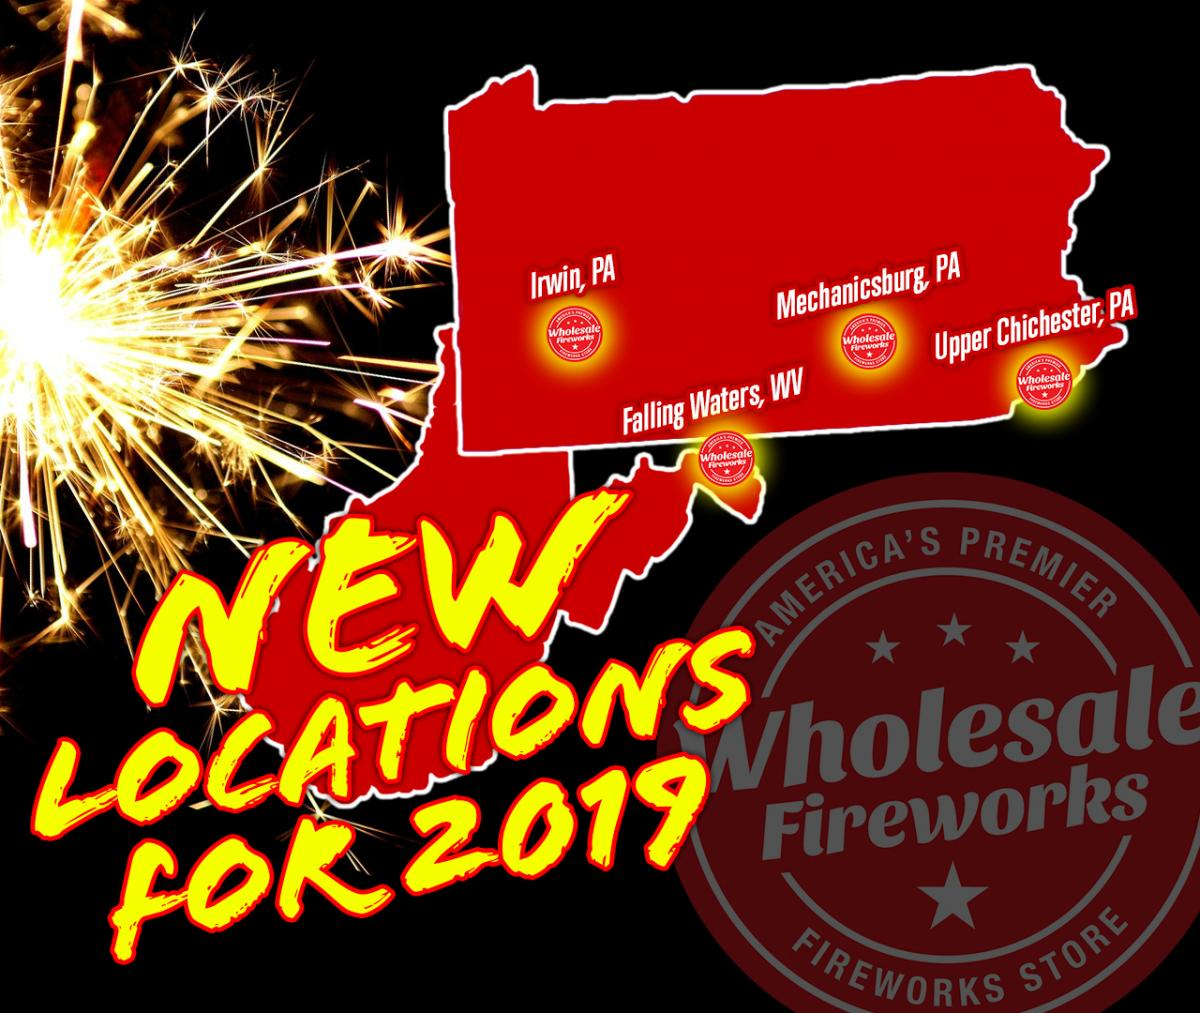 wholesale fireworks locations in PA and WV